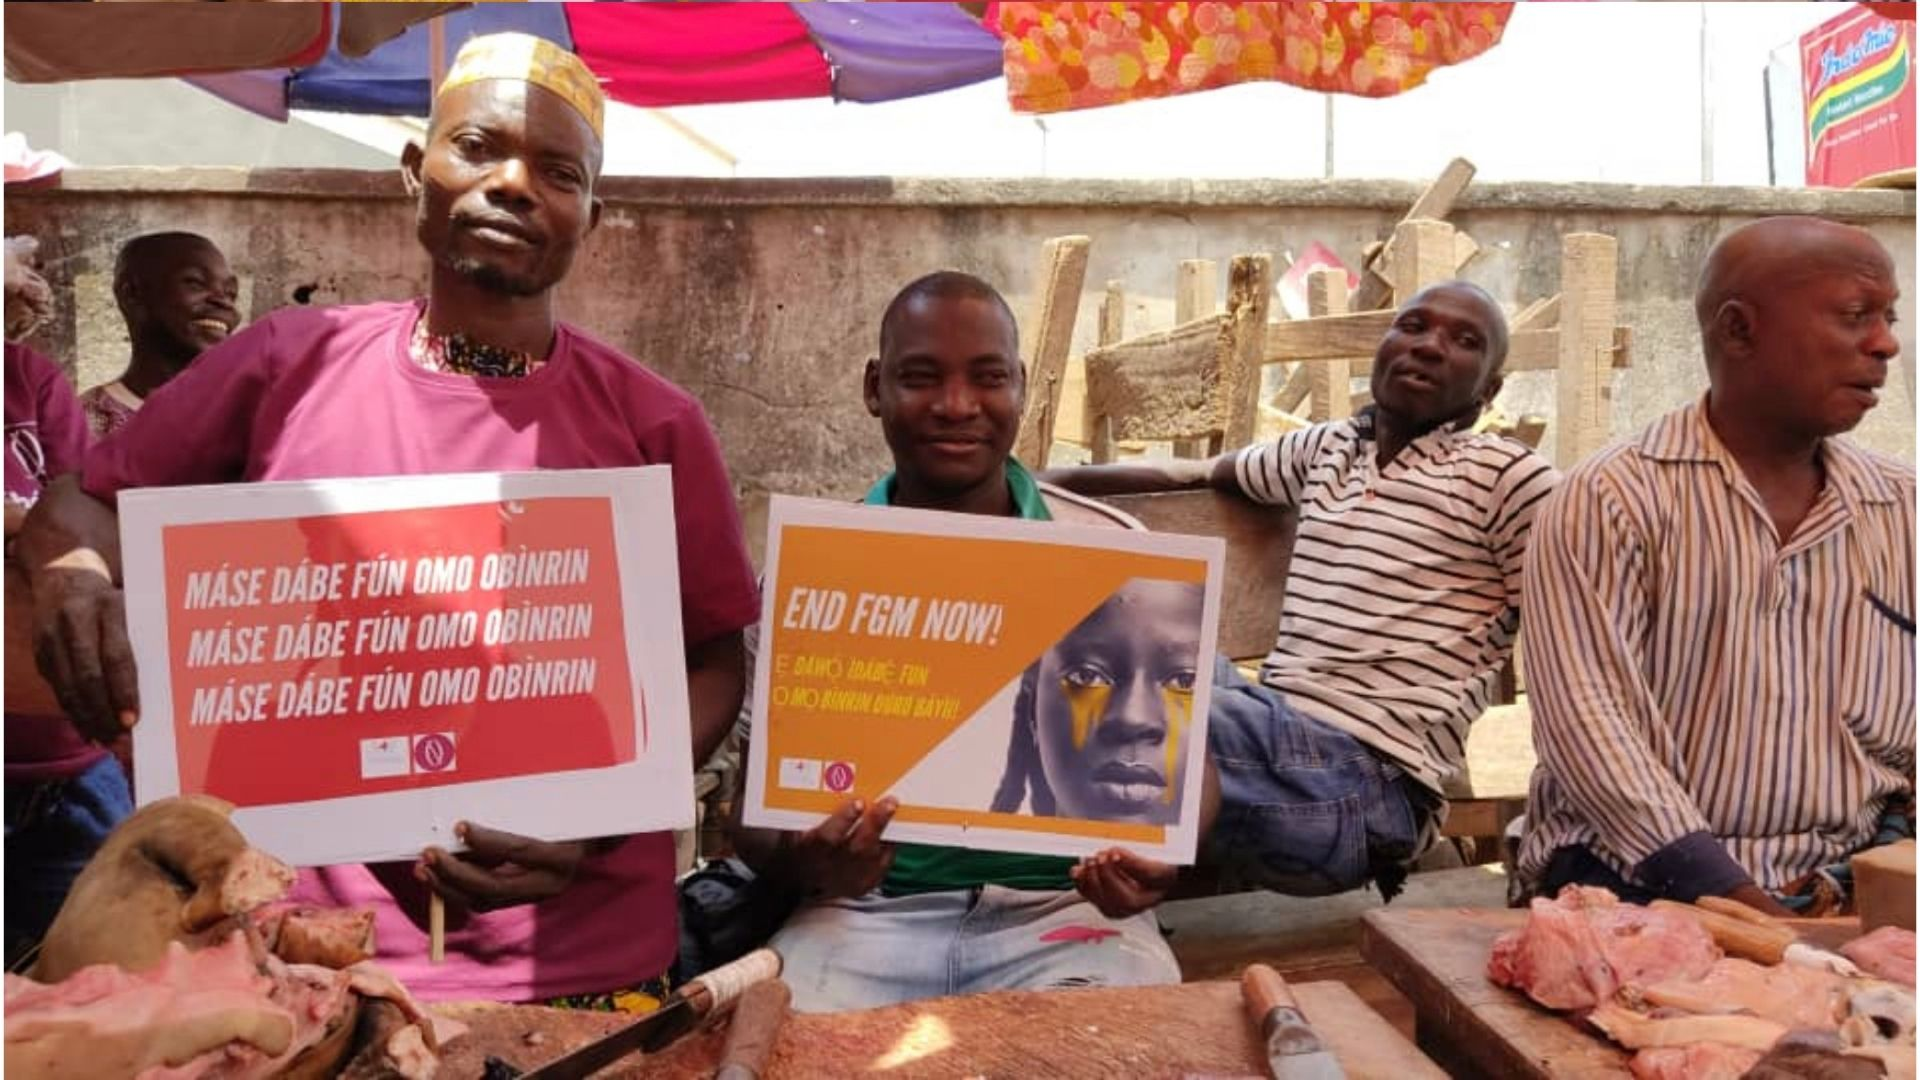 End FGM Campaigner take to the Markets with Media, in Nigeria